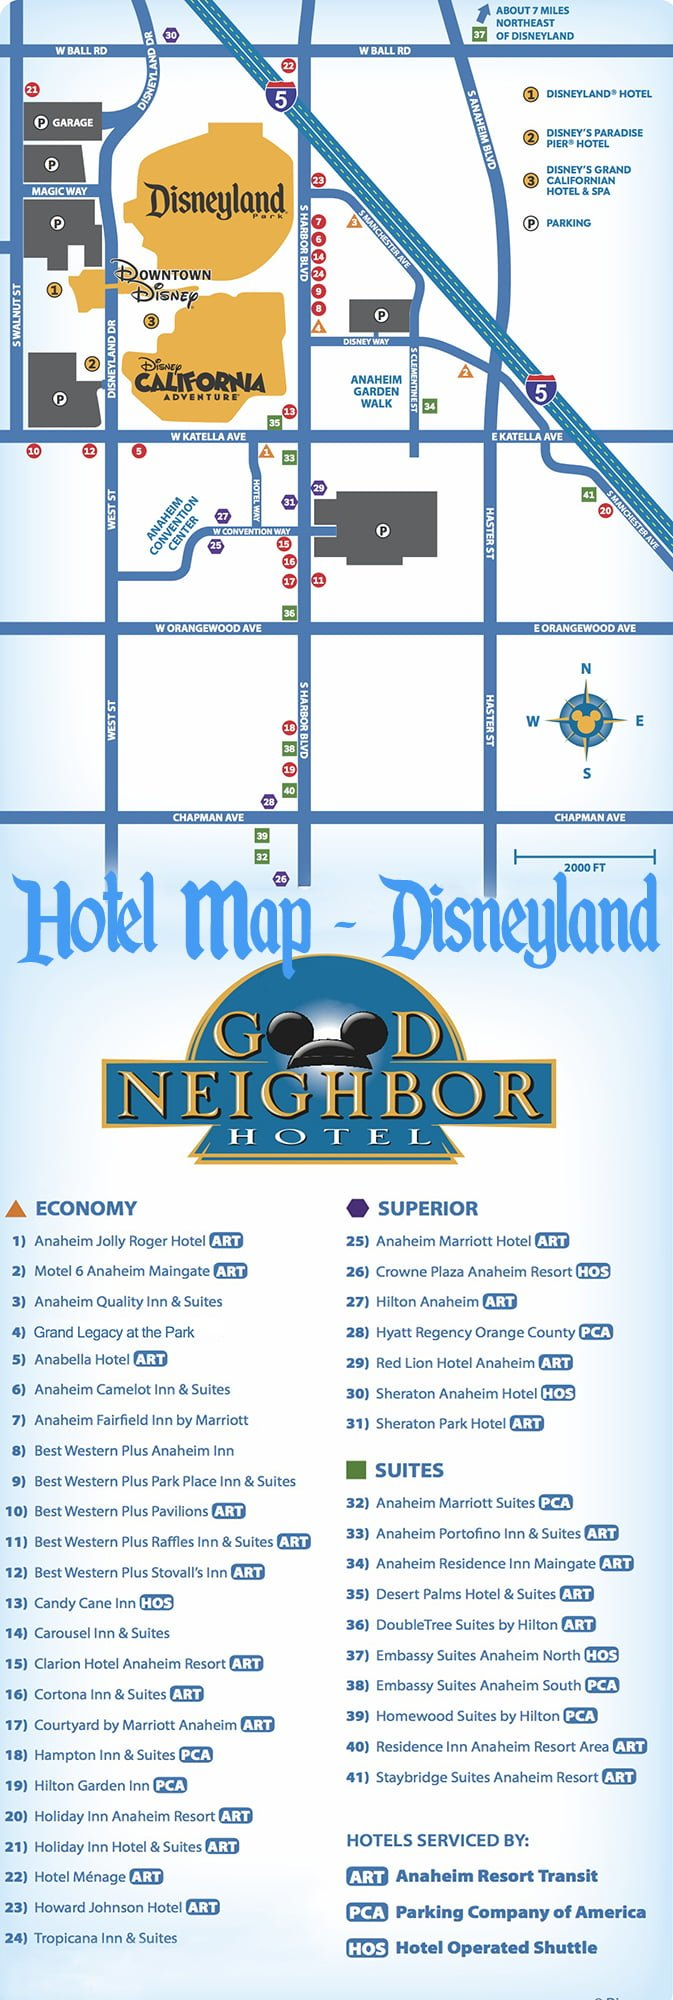 Good Neighbor Disneyland Hotels Reviews